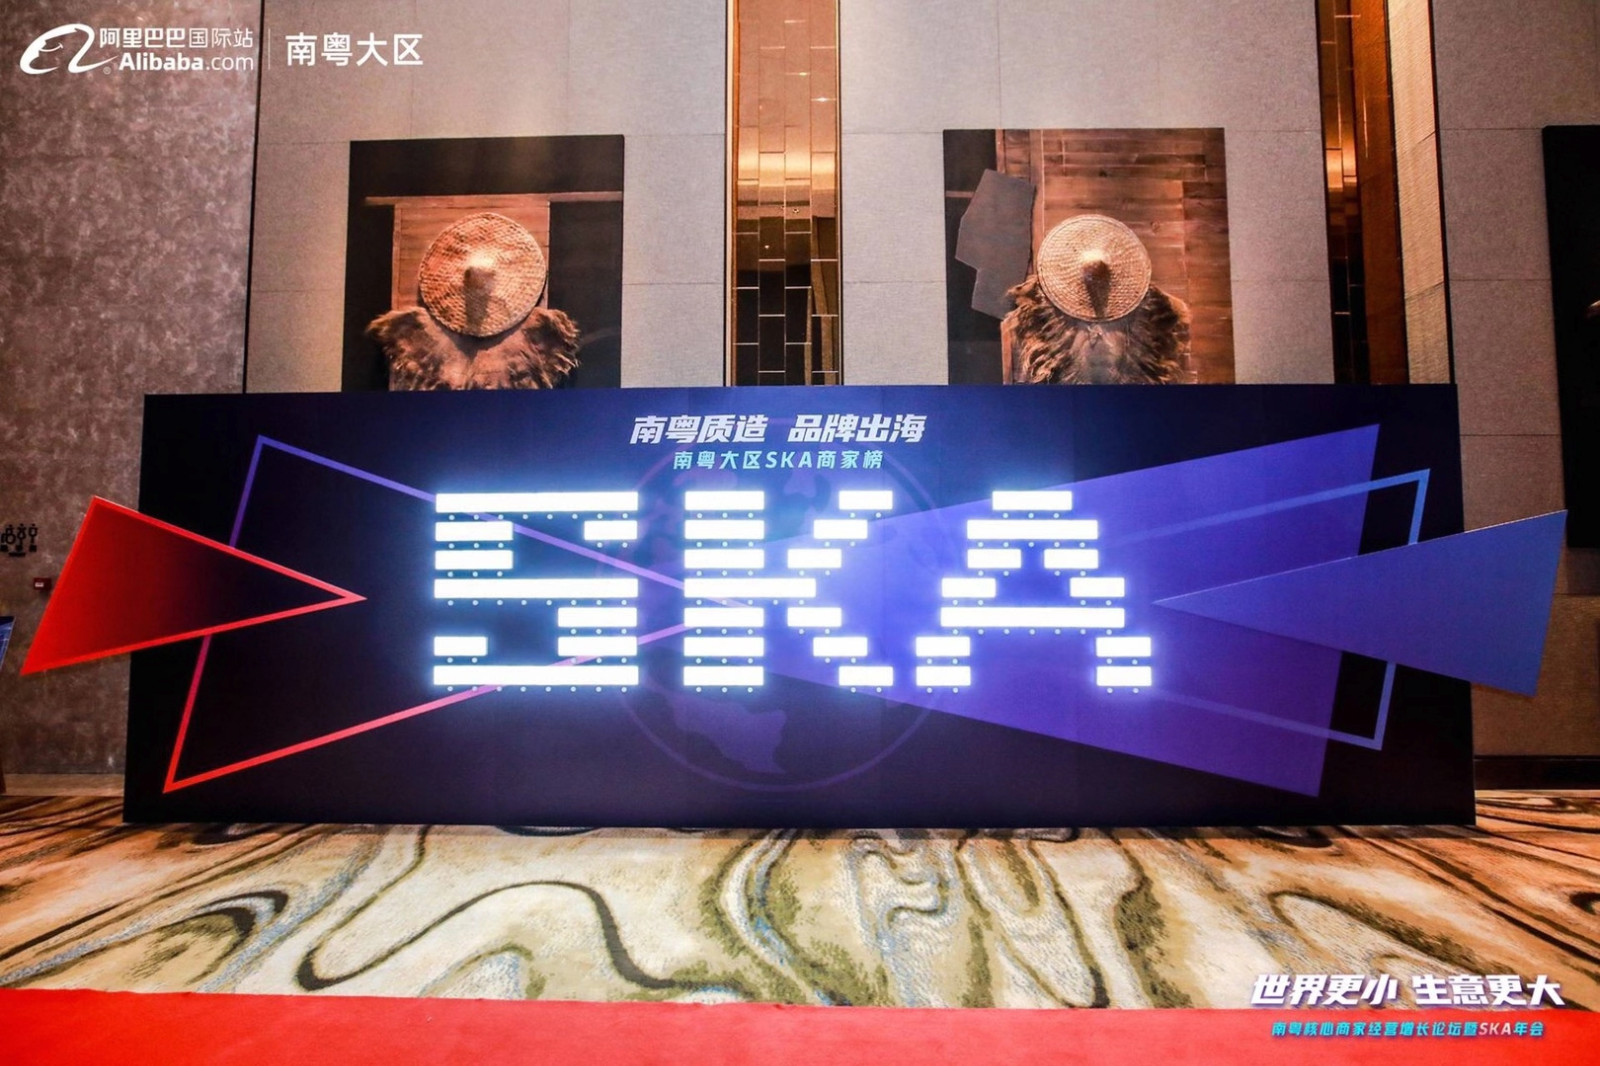 news-Two Eight-Haoxin Two Eight Ceramics was listed on the Nasdaq screen in Times Square, New York-i